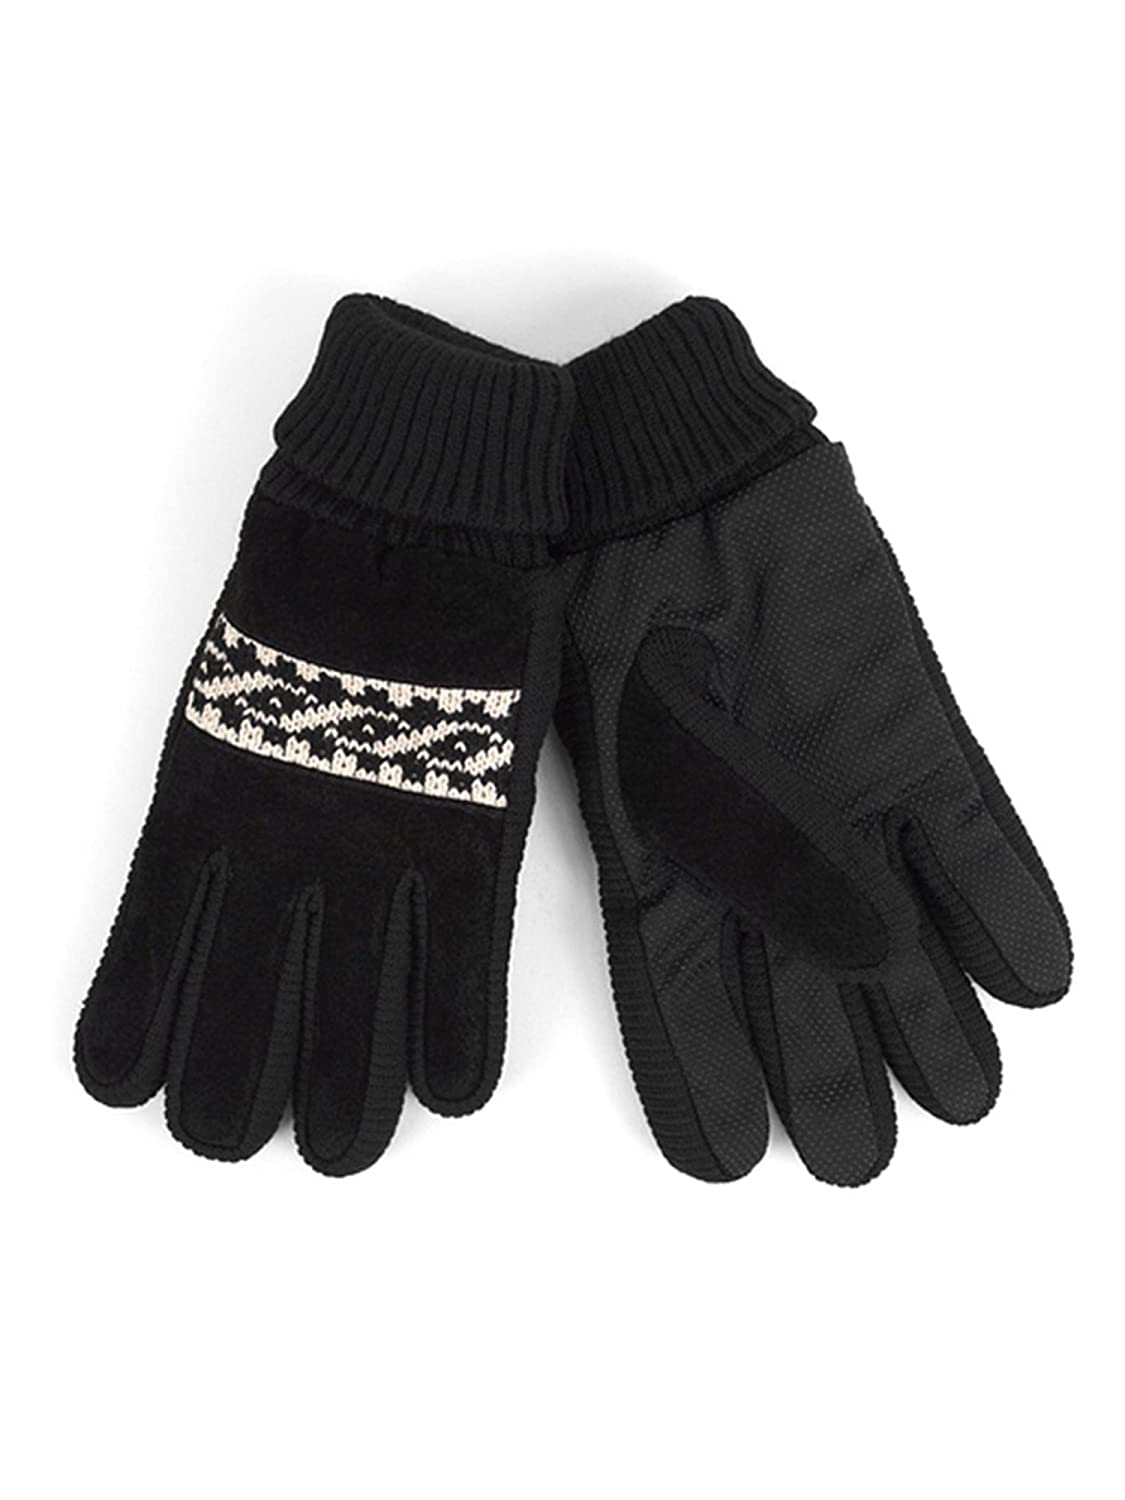 Mens Leather Non-Slip Grip Winter Gloves with Soft Acrylic Lining